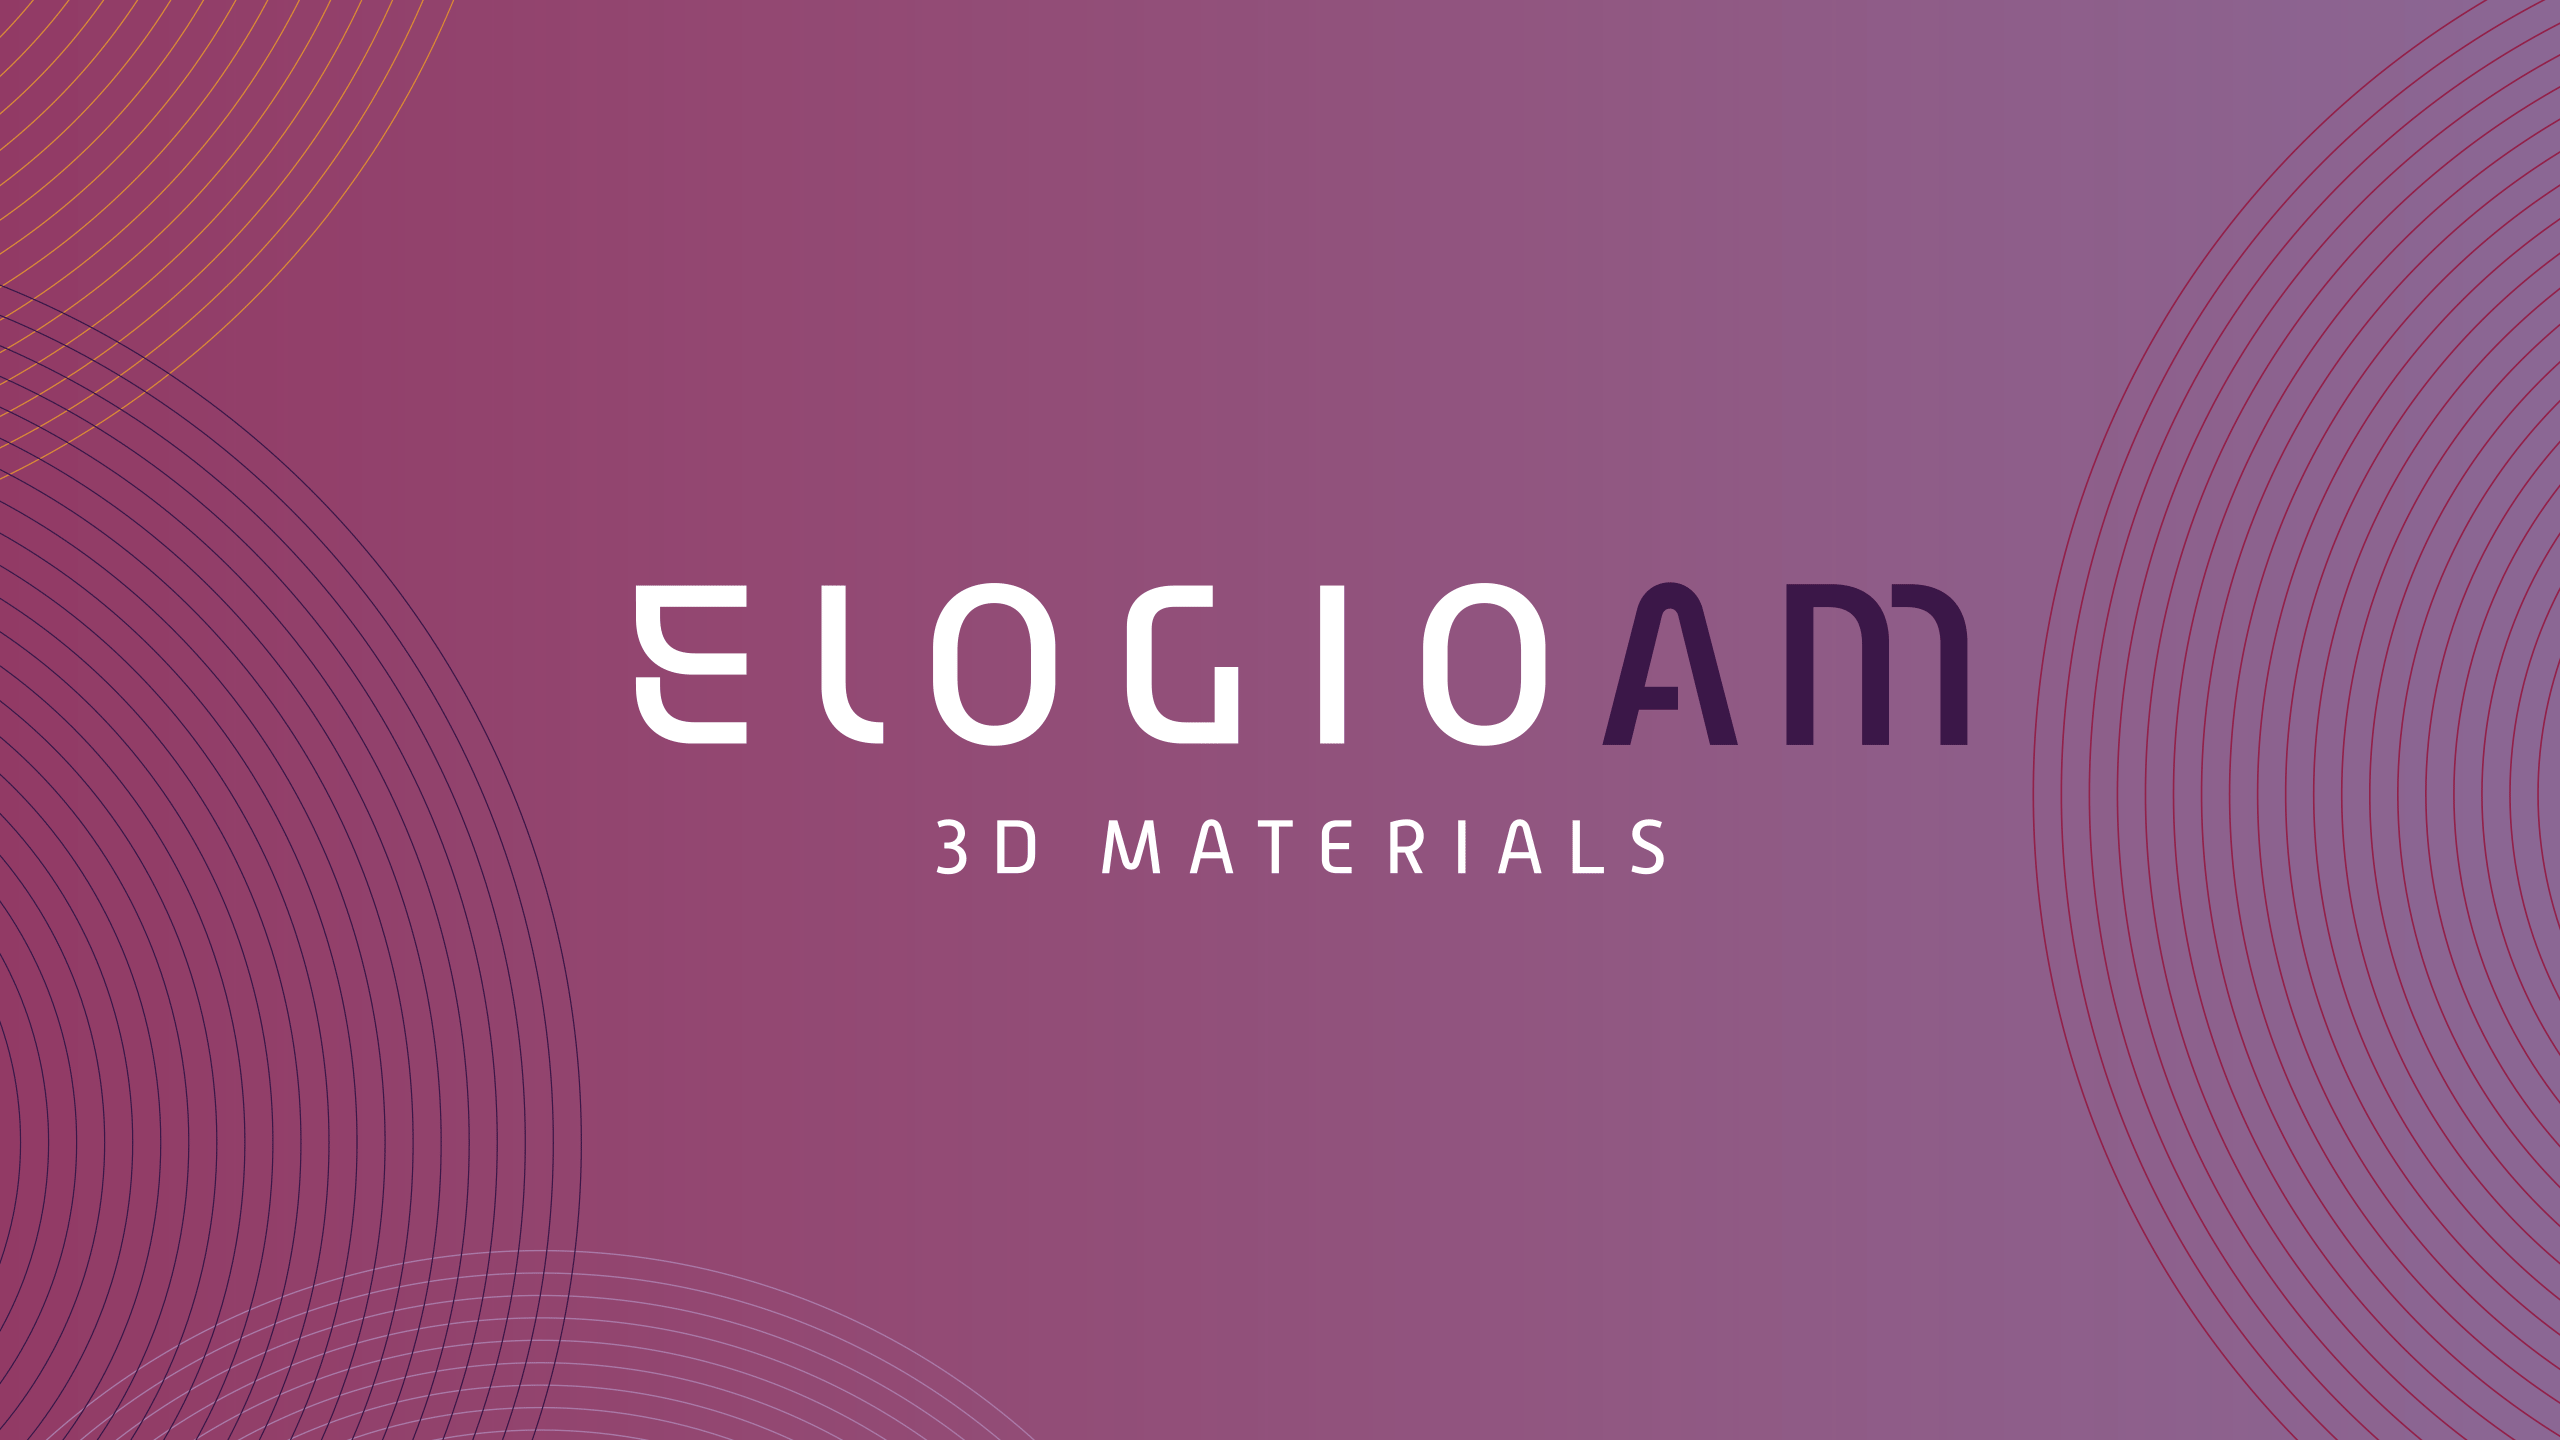 Final logo for ElogioAM.